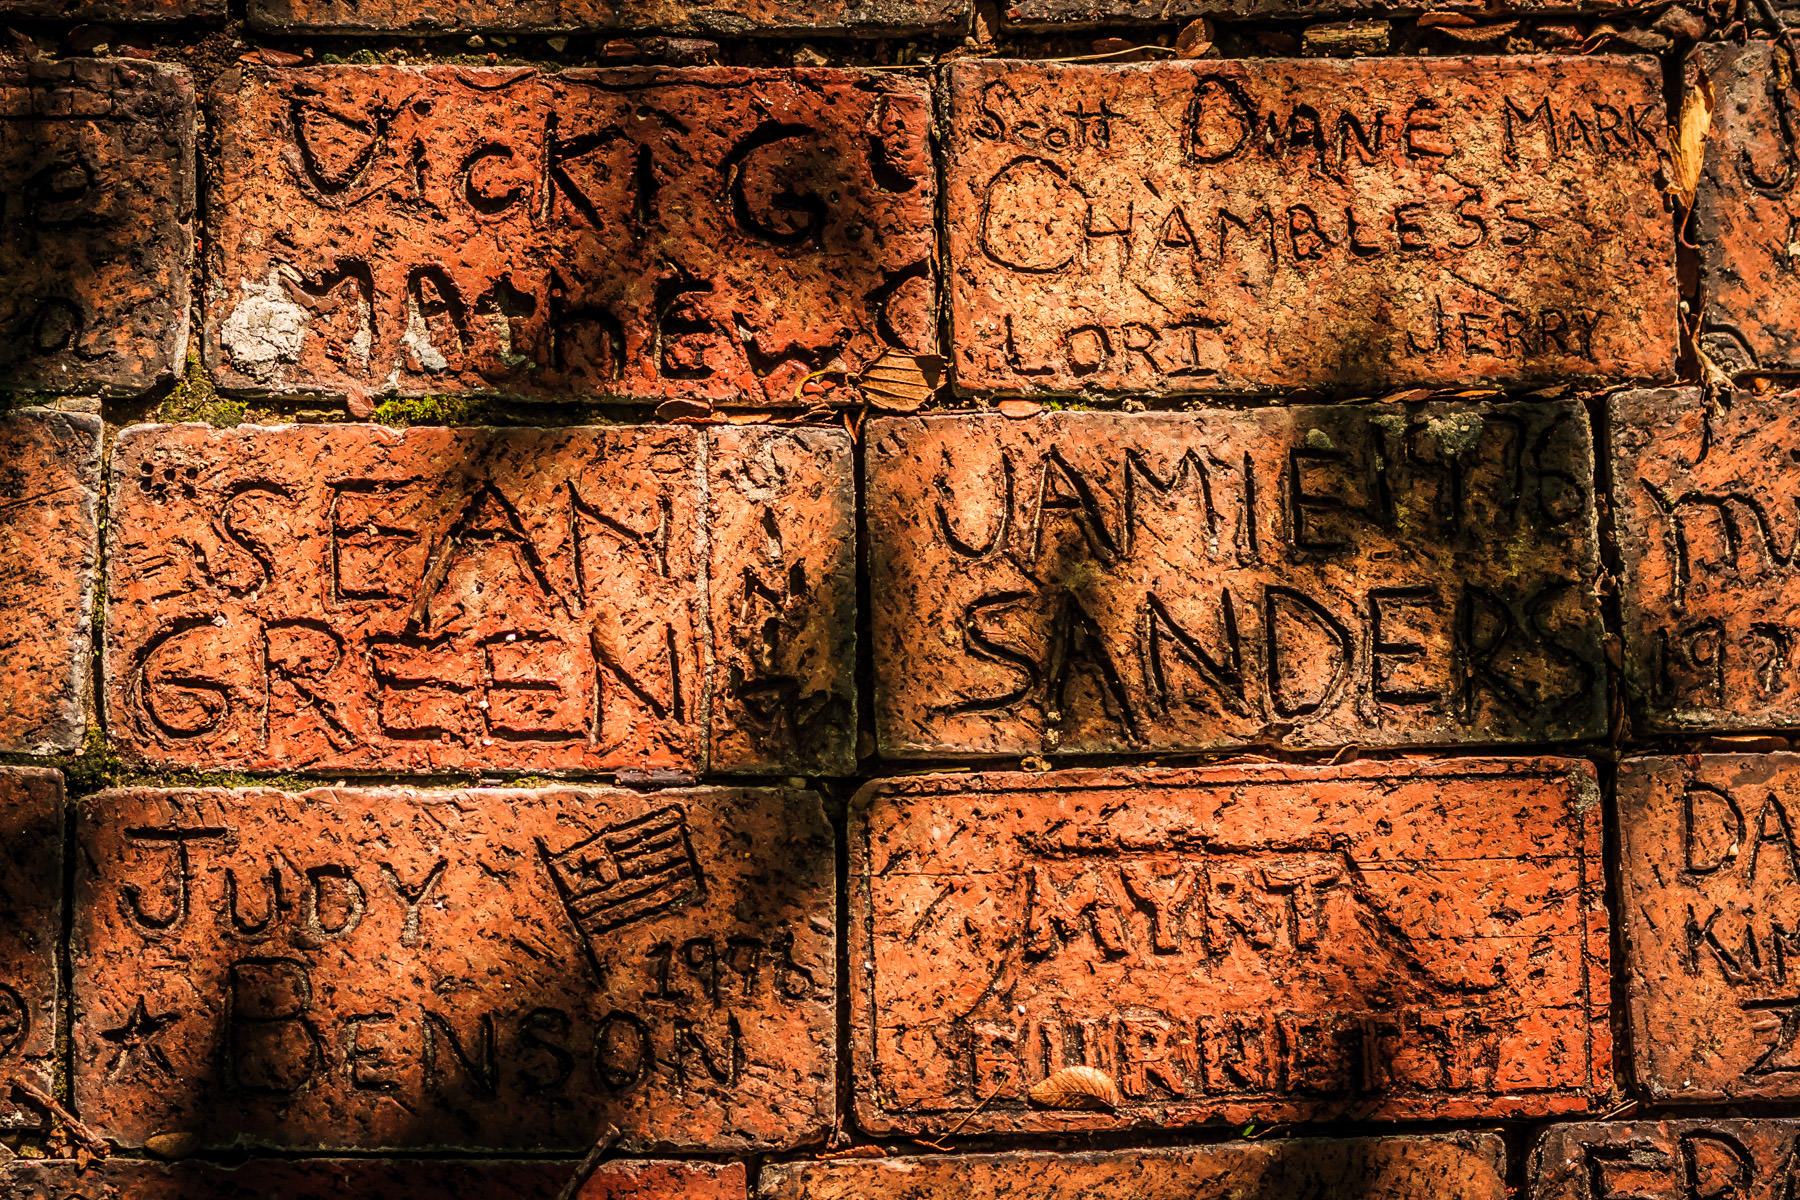 Bricks inscribed with names near the Tarrant County Courthouse, Fort Worth, Texas.